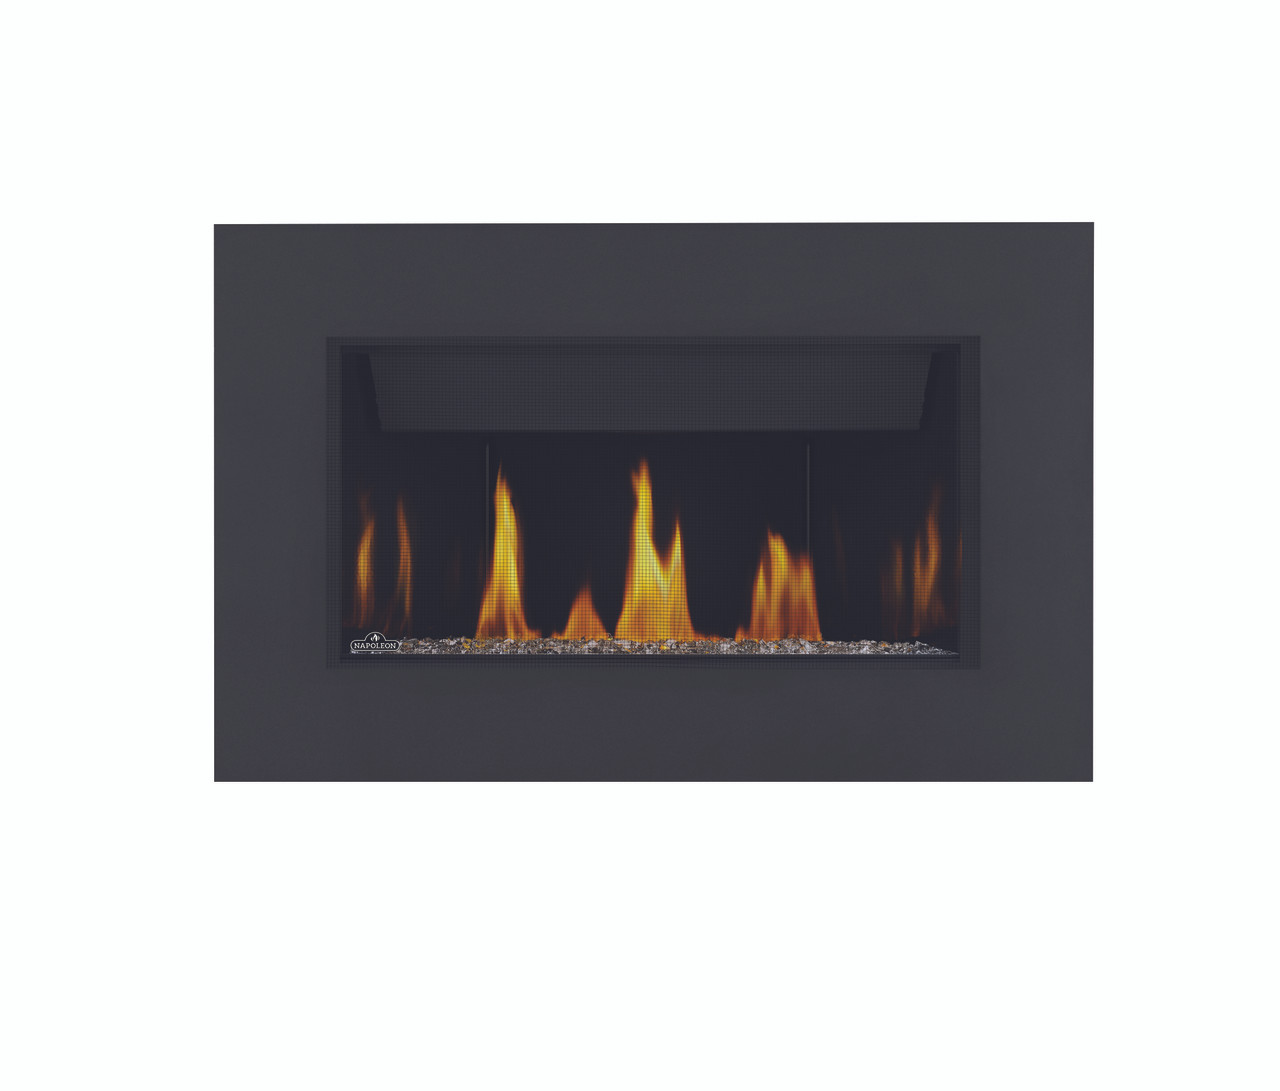 Groovy Napoleon Bl36Nte Direct Vent Linear Gas Fireplace Top Vent Download Free Architecture Designs Grimeyleaguecom